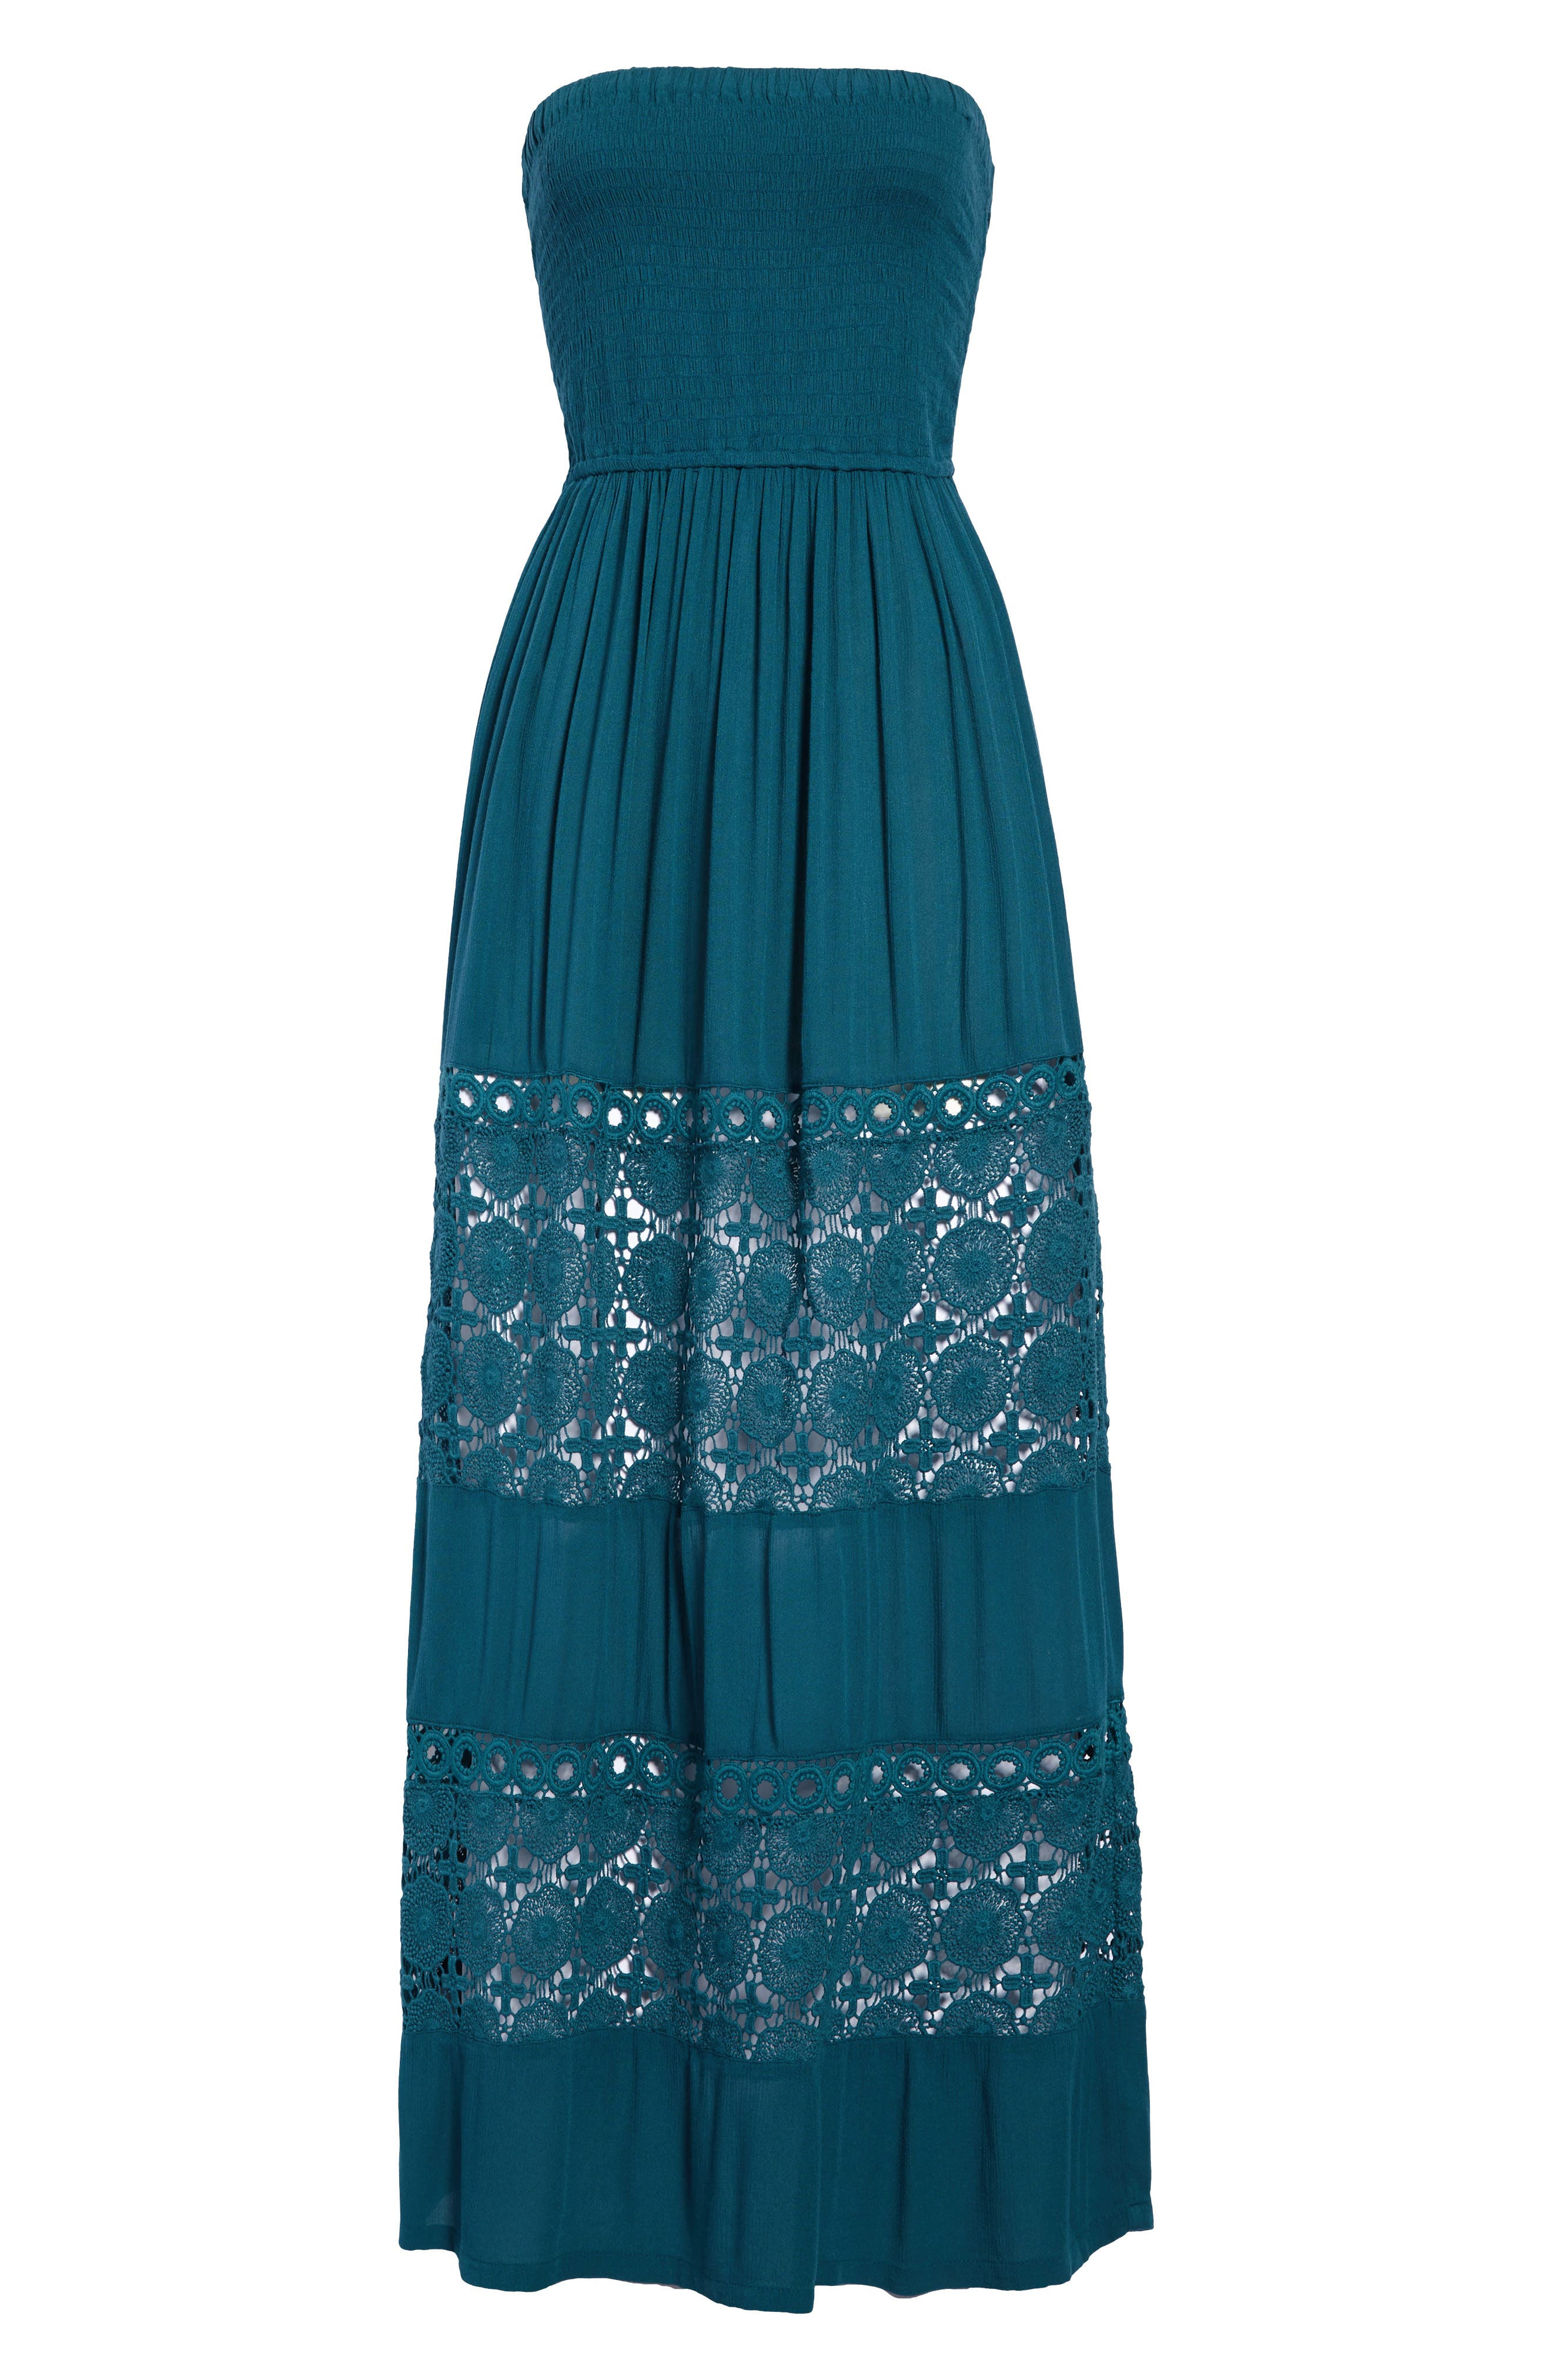 Post-beach covering couldn\\\'t be easier or more stylish that this throw-on-and-go dress that makes a stop at the waterfront cafe a more attractive proposition. Style Name: Chelsea28 Farrah Smocked Cover-Up Maxi Dress. Style Number: 5584802. Available in stores.